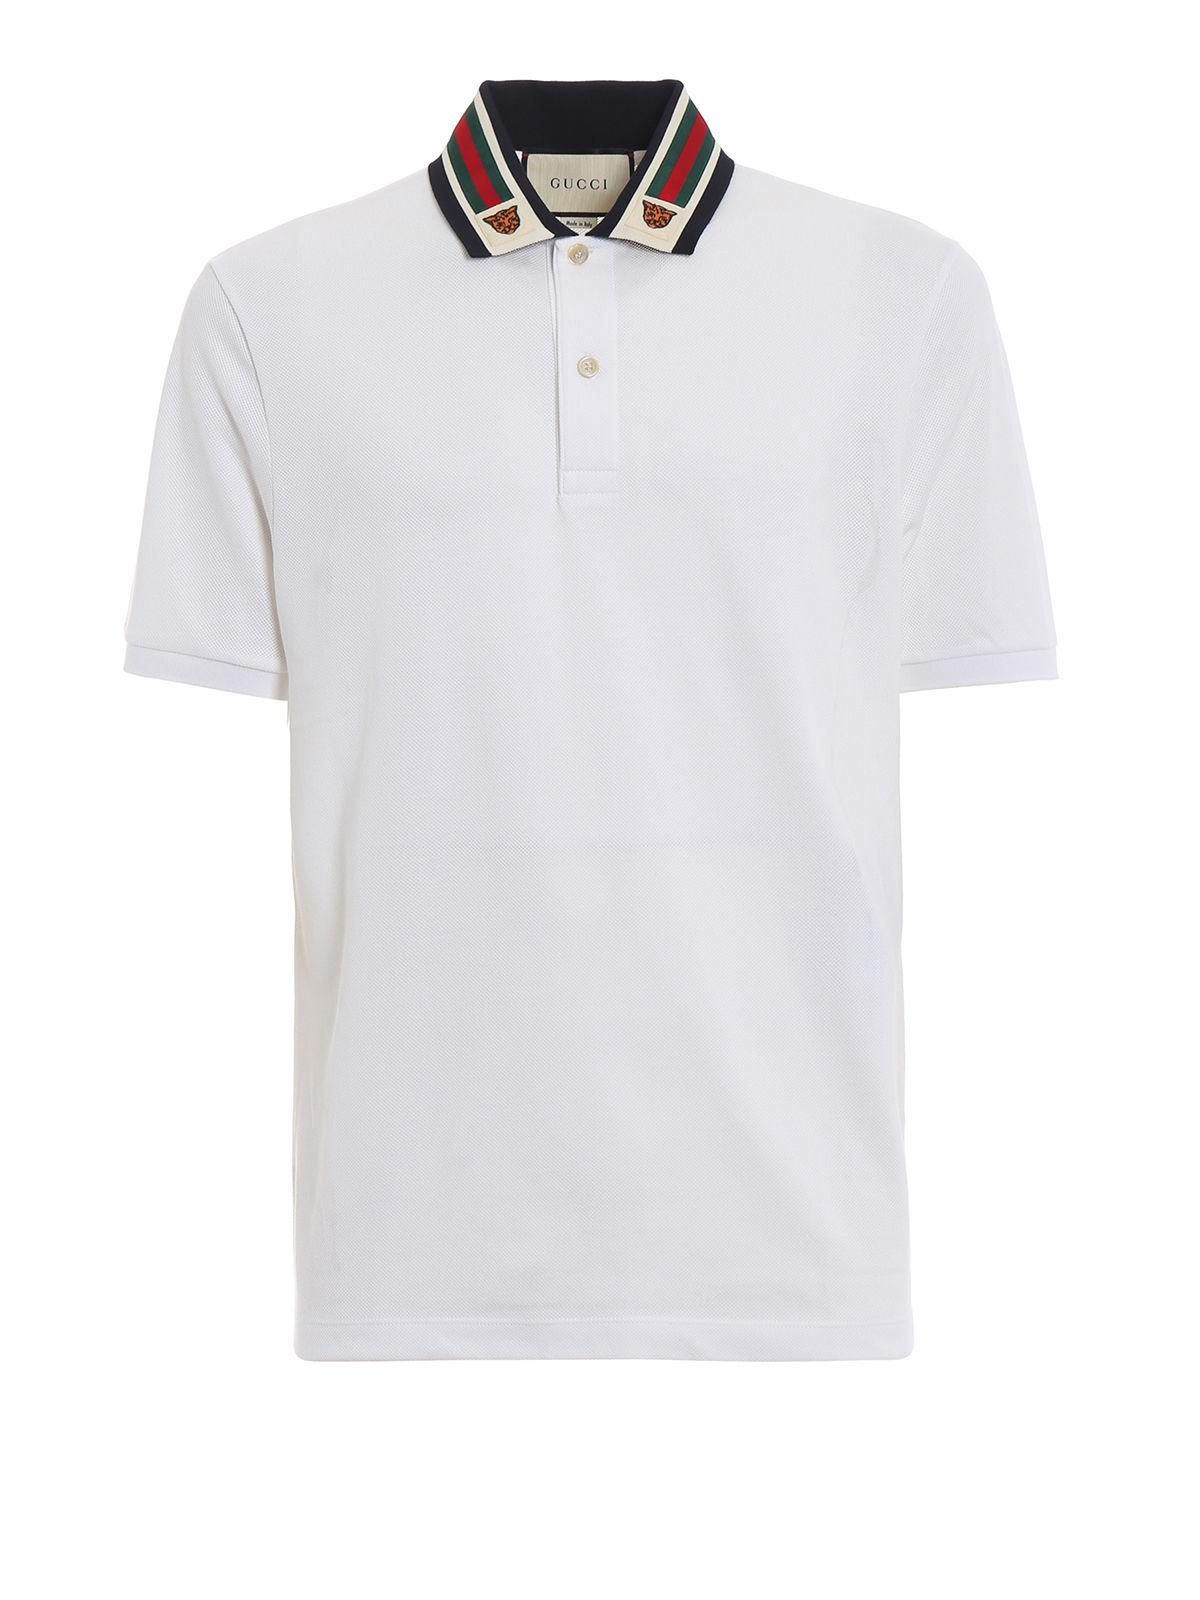 b22aa5bbe218 Gucci - White Polo Shirt for Men - Lyst. View fullscreen